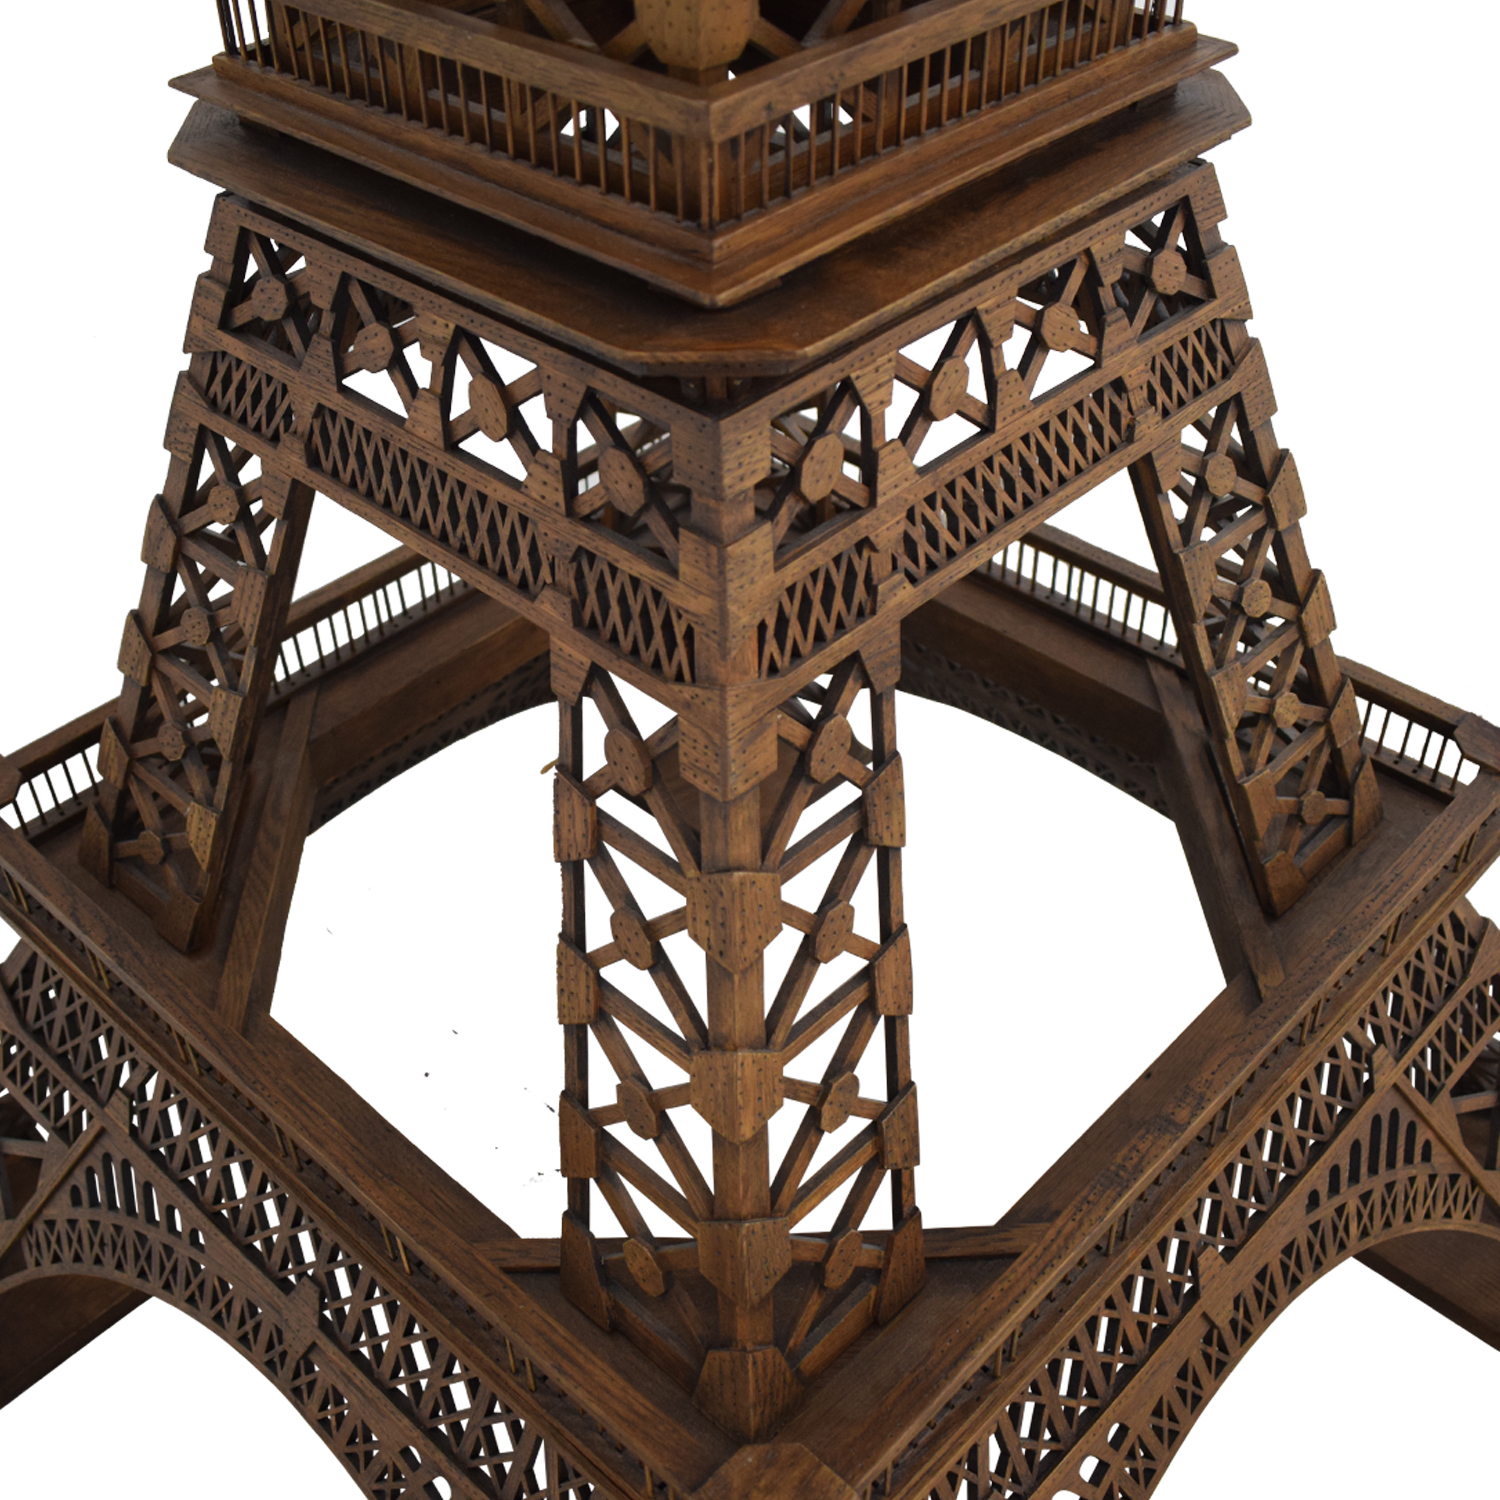 Restoration Hardware Restoration Hardware Eiffel Tower discount